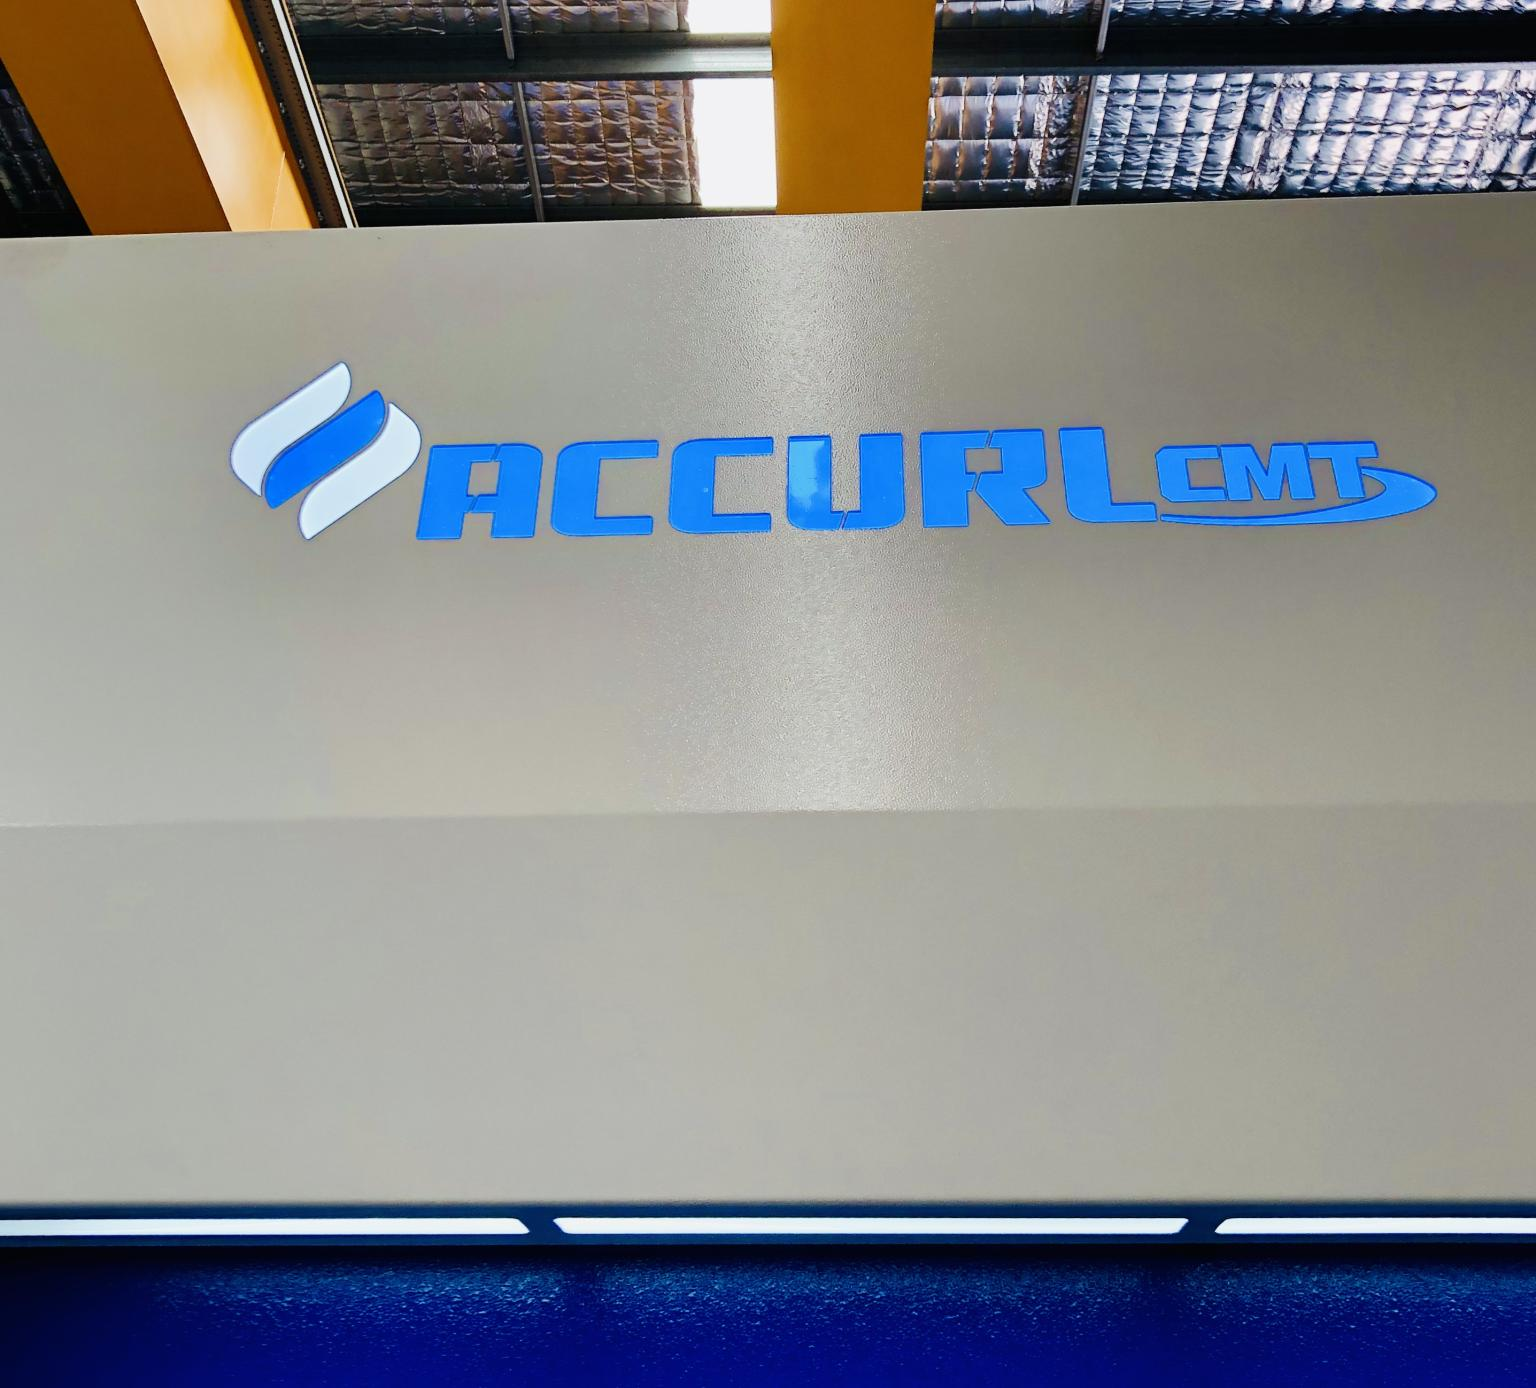 New AccurlCMT branding